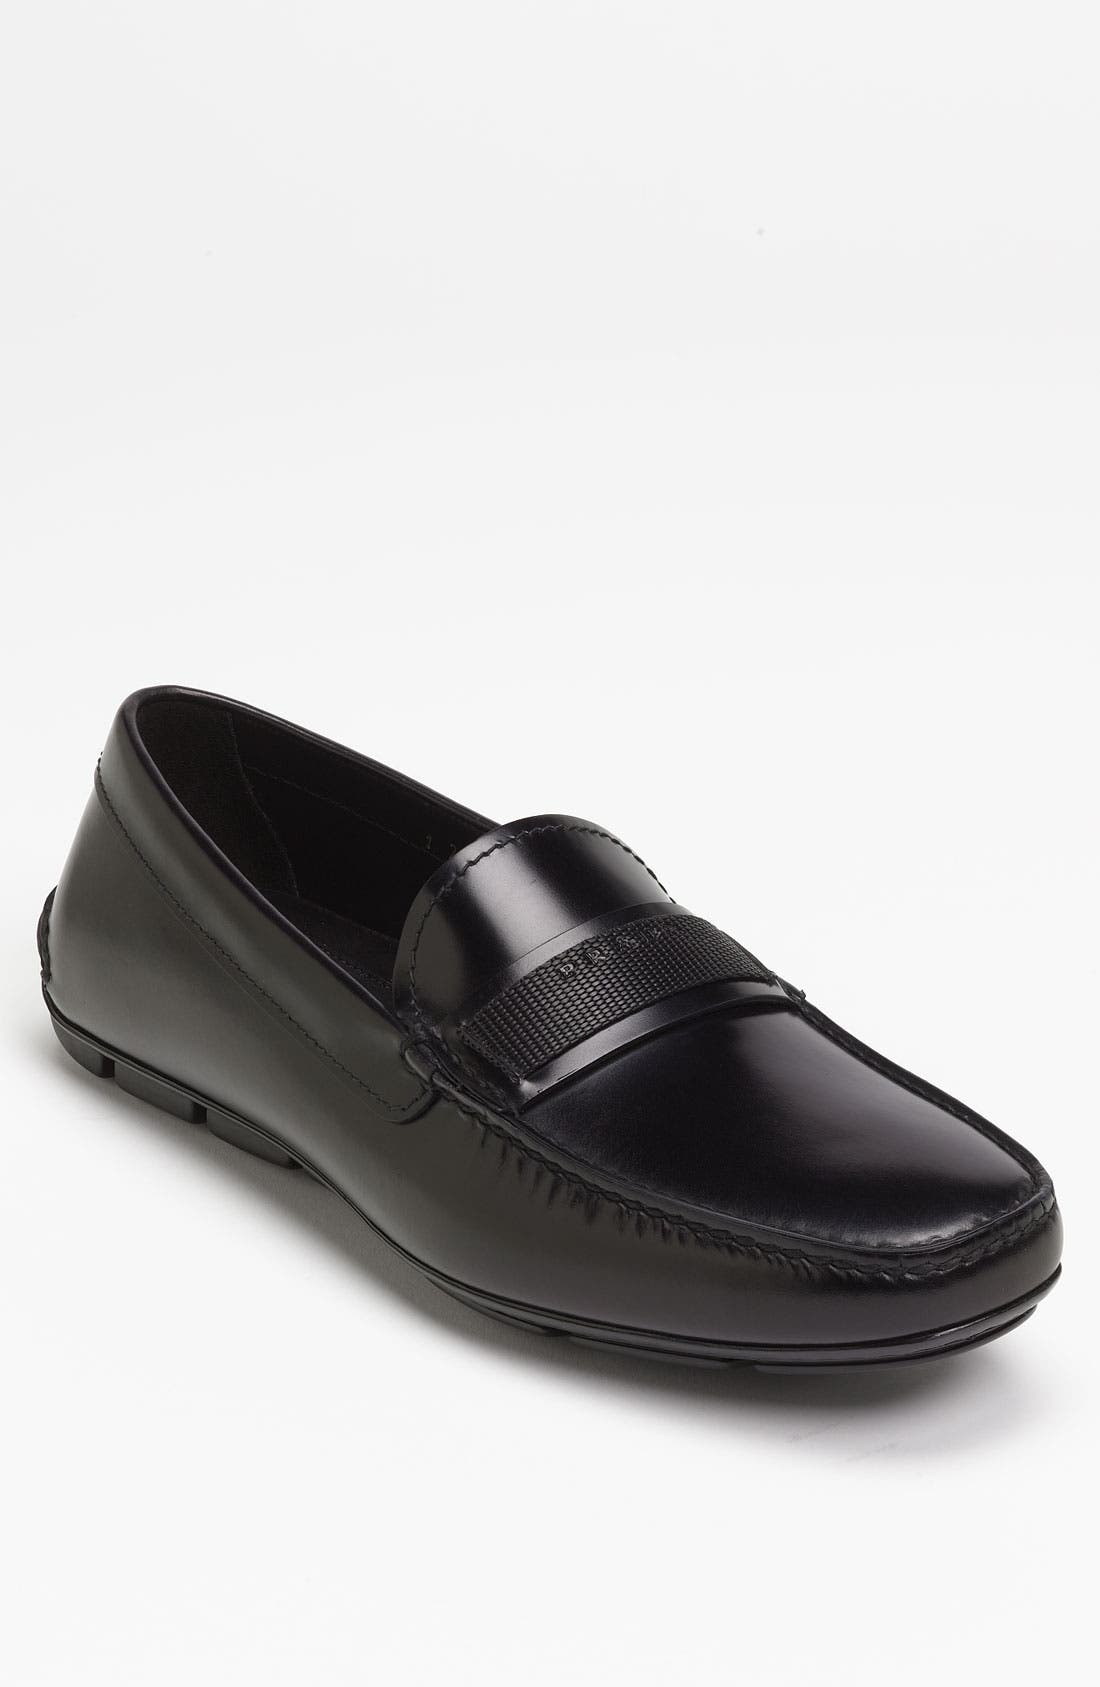 Main Image - Prada Driving Moccasin